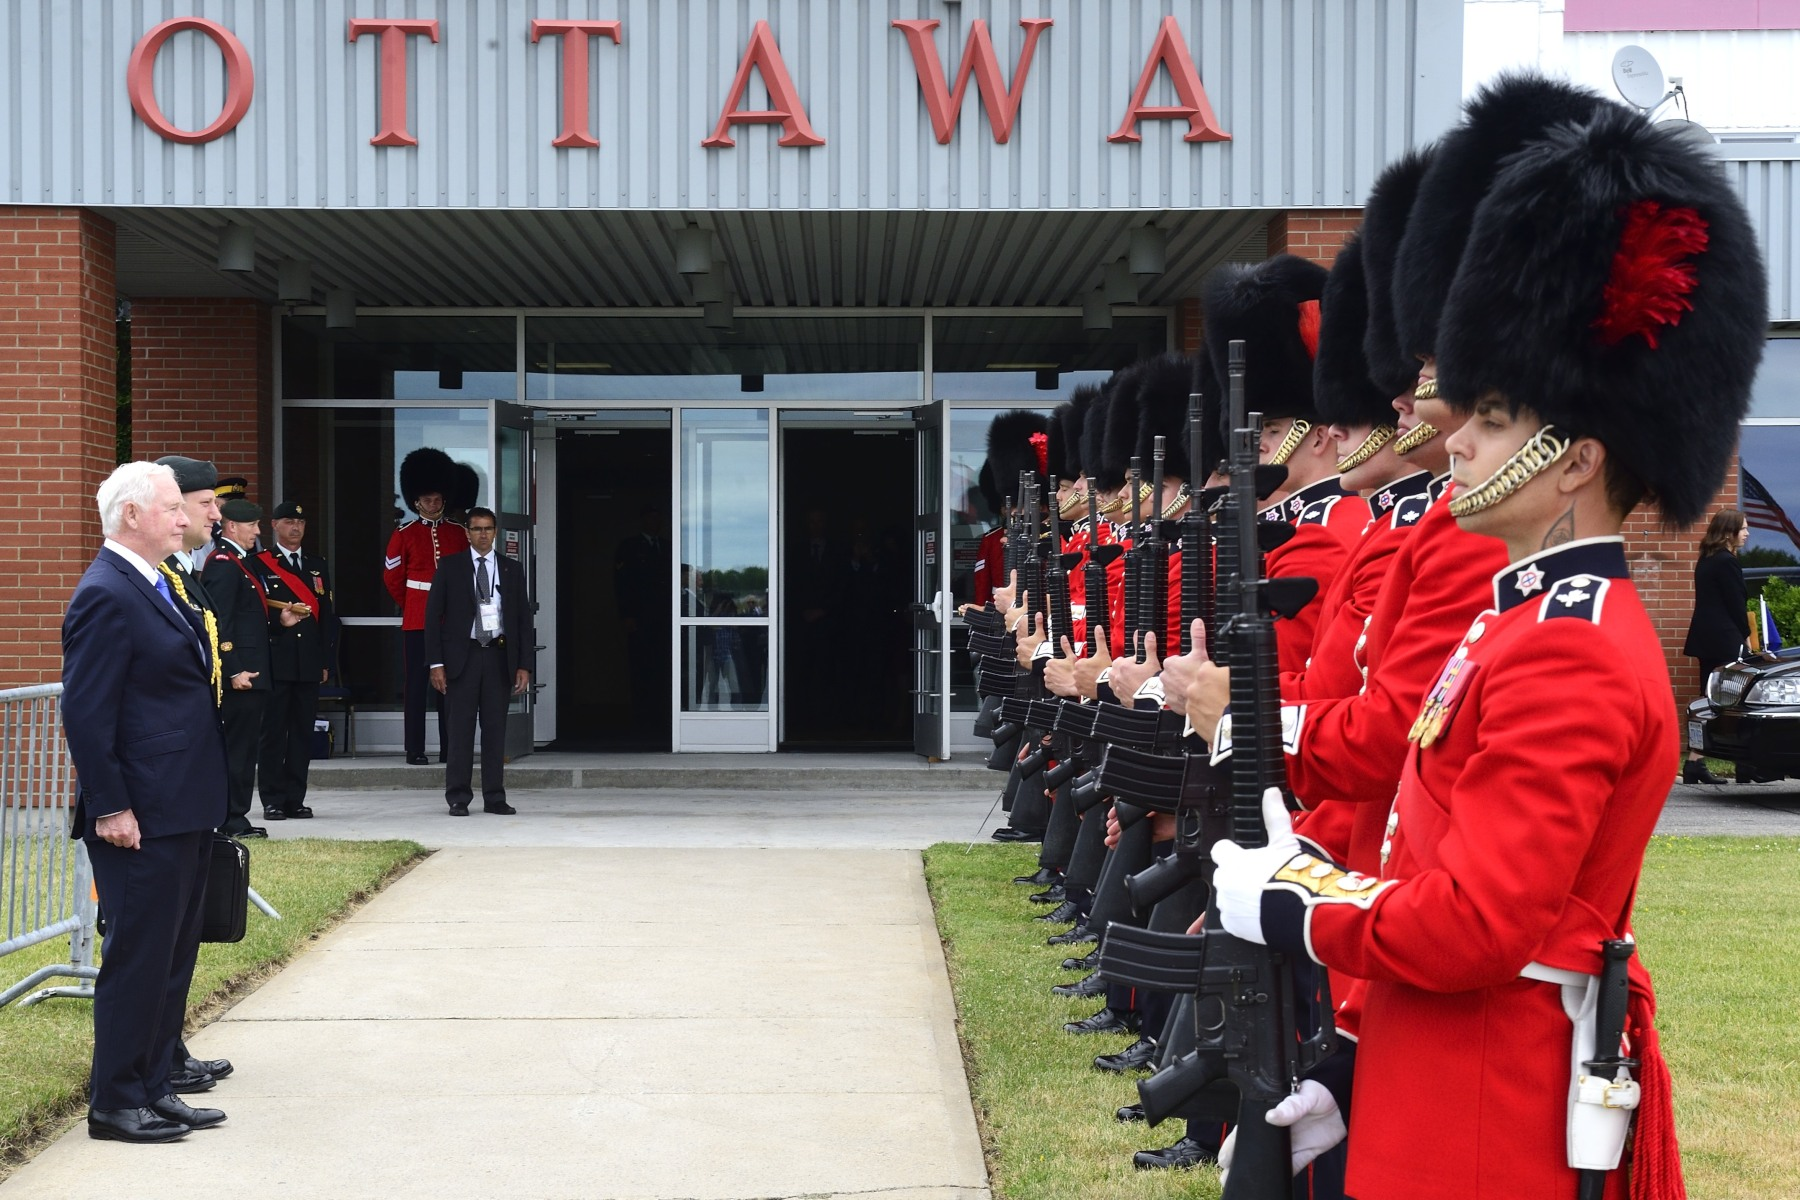 Near the tarmac at Ottawa International Airport, the Governor General, as commander-in-chief of Canada, received a royal salute from a guard of honour before the arrival of President Obama.